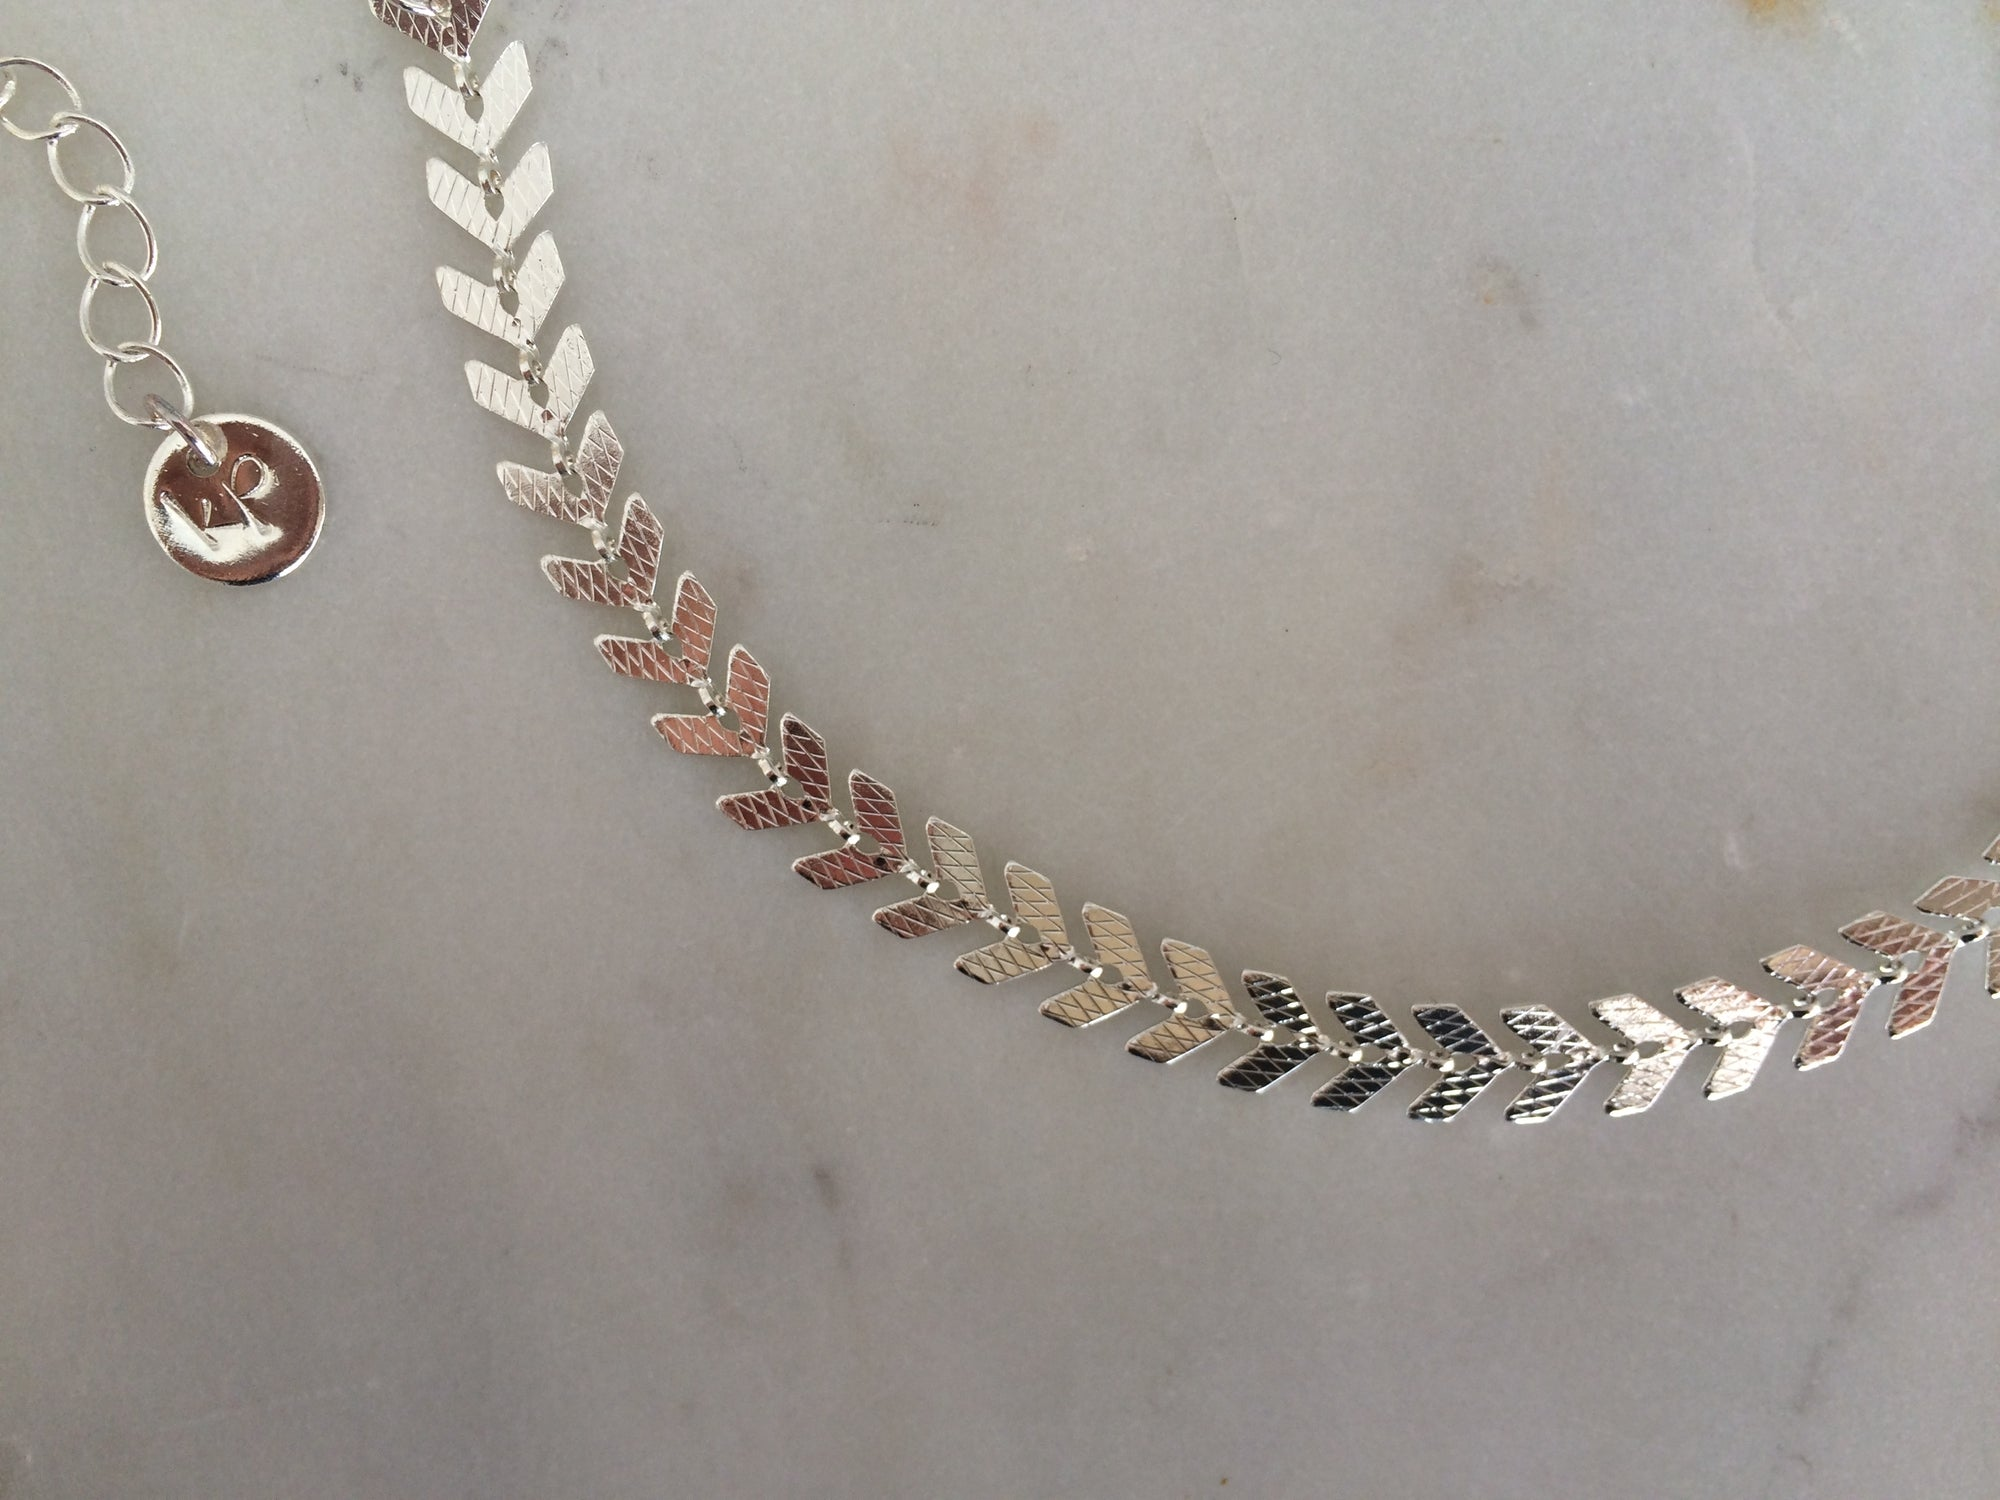 silver chokers, silver chains,silver bonefish chain,chain choker,silver choker,silver chains, silver necklace, shinny silver necklace, shinny silver choker, choker silver,